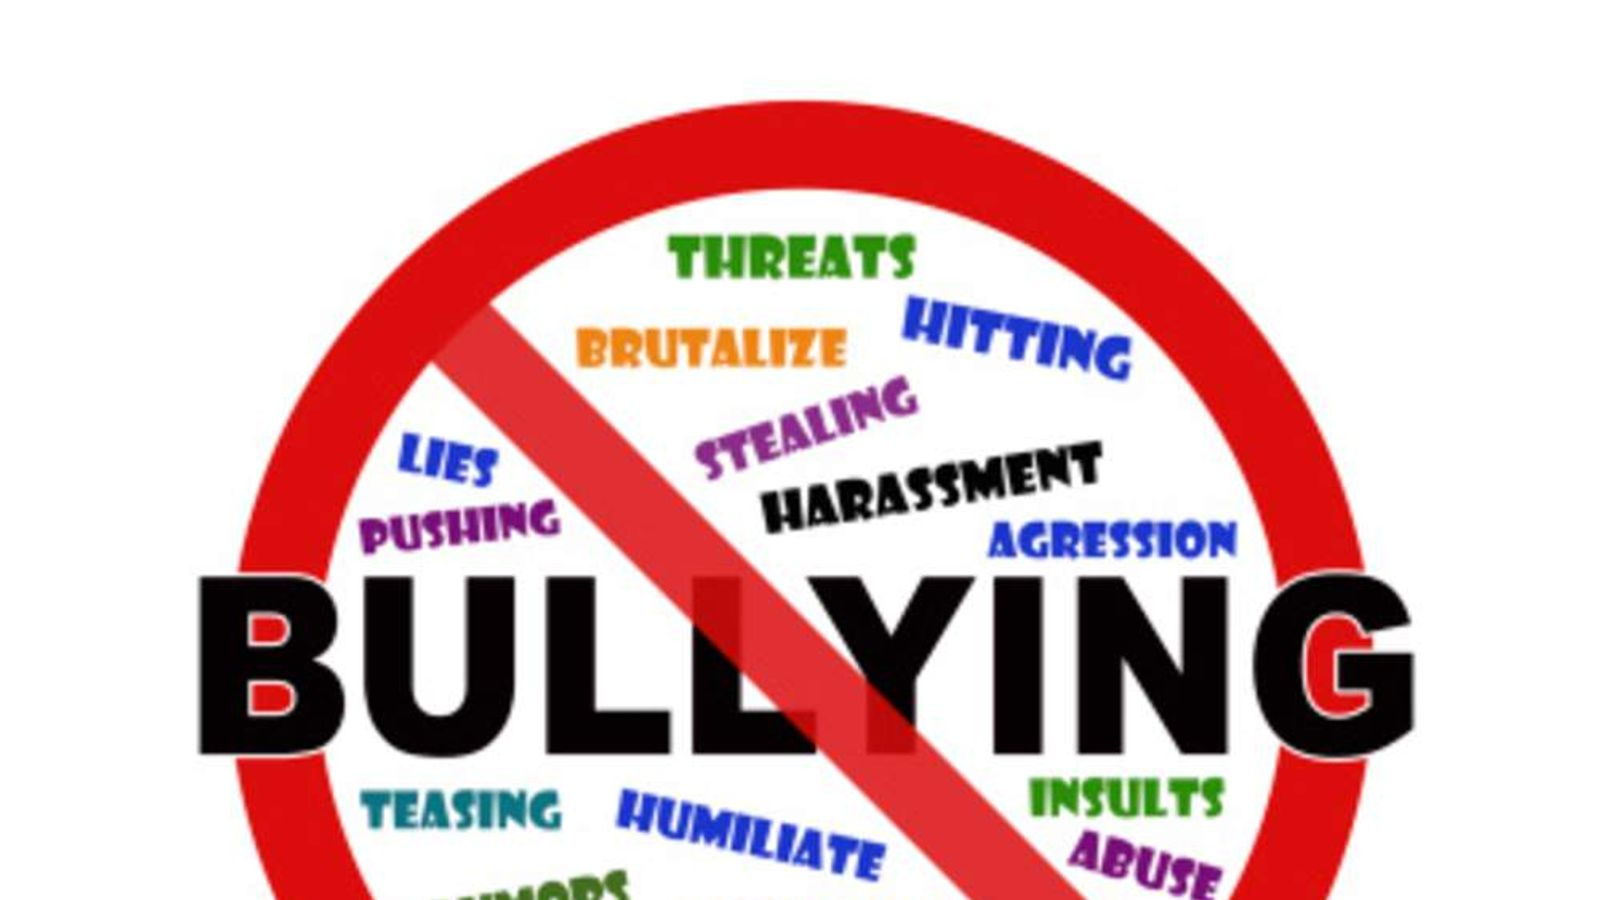 Cyber bullying sign